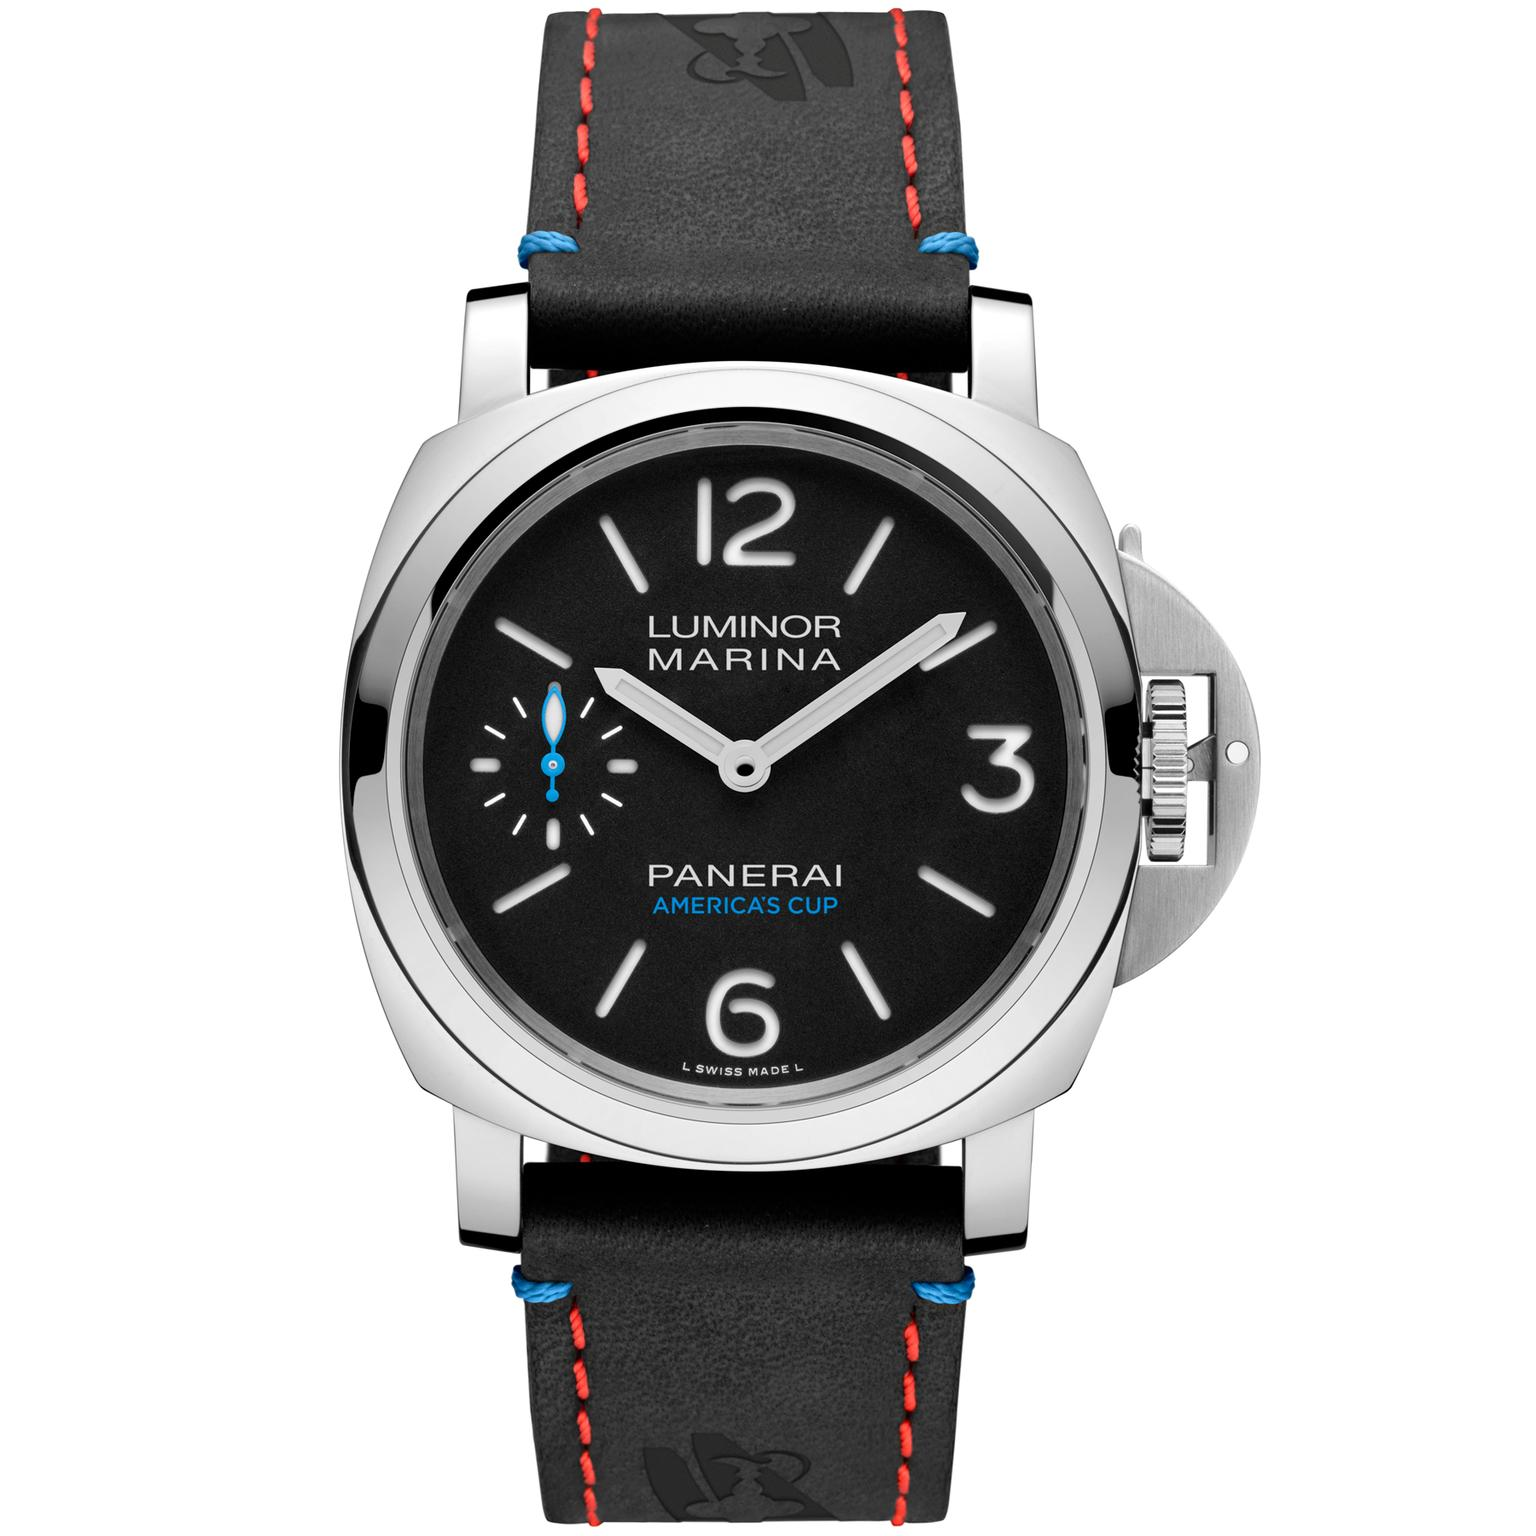 Panerai Luminor Marina Oracle Team USA 8 days accaio watch